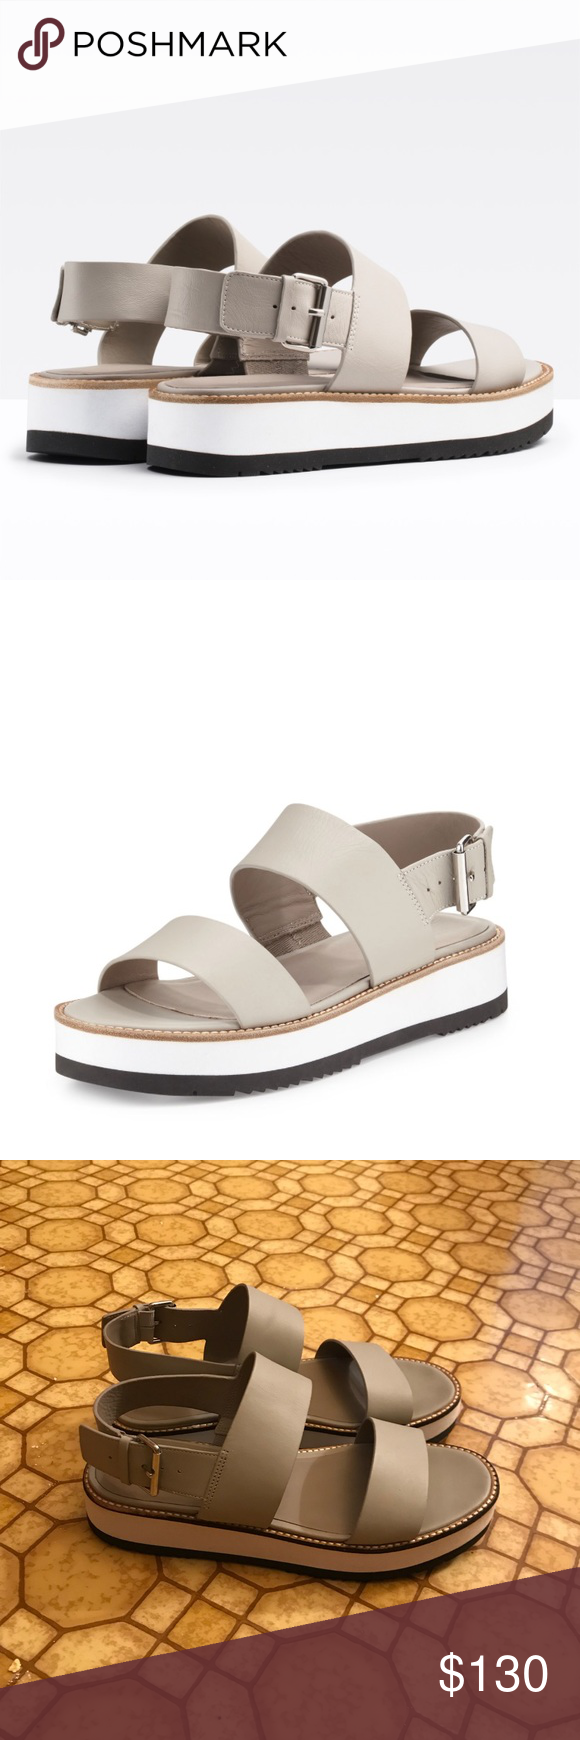 97a581ac9f3 Vince Mana Leather Slingback Platform Sandal Gorgeous shoes in fossil. Wish  these were my size